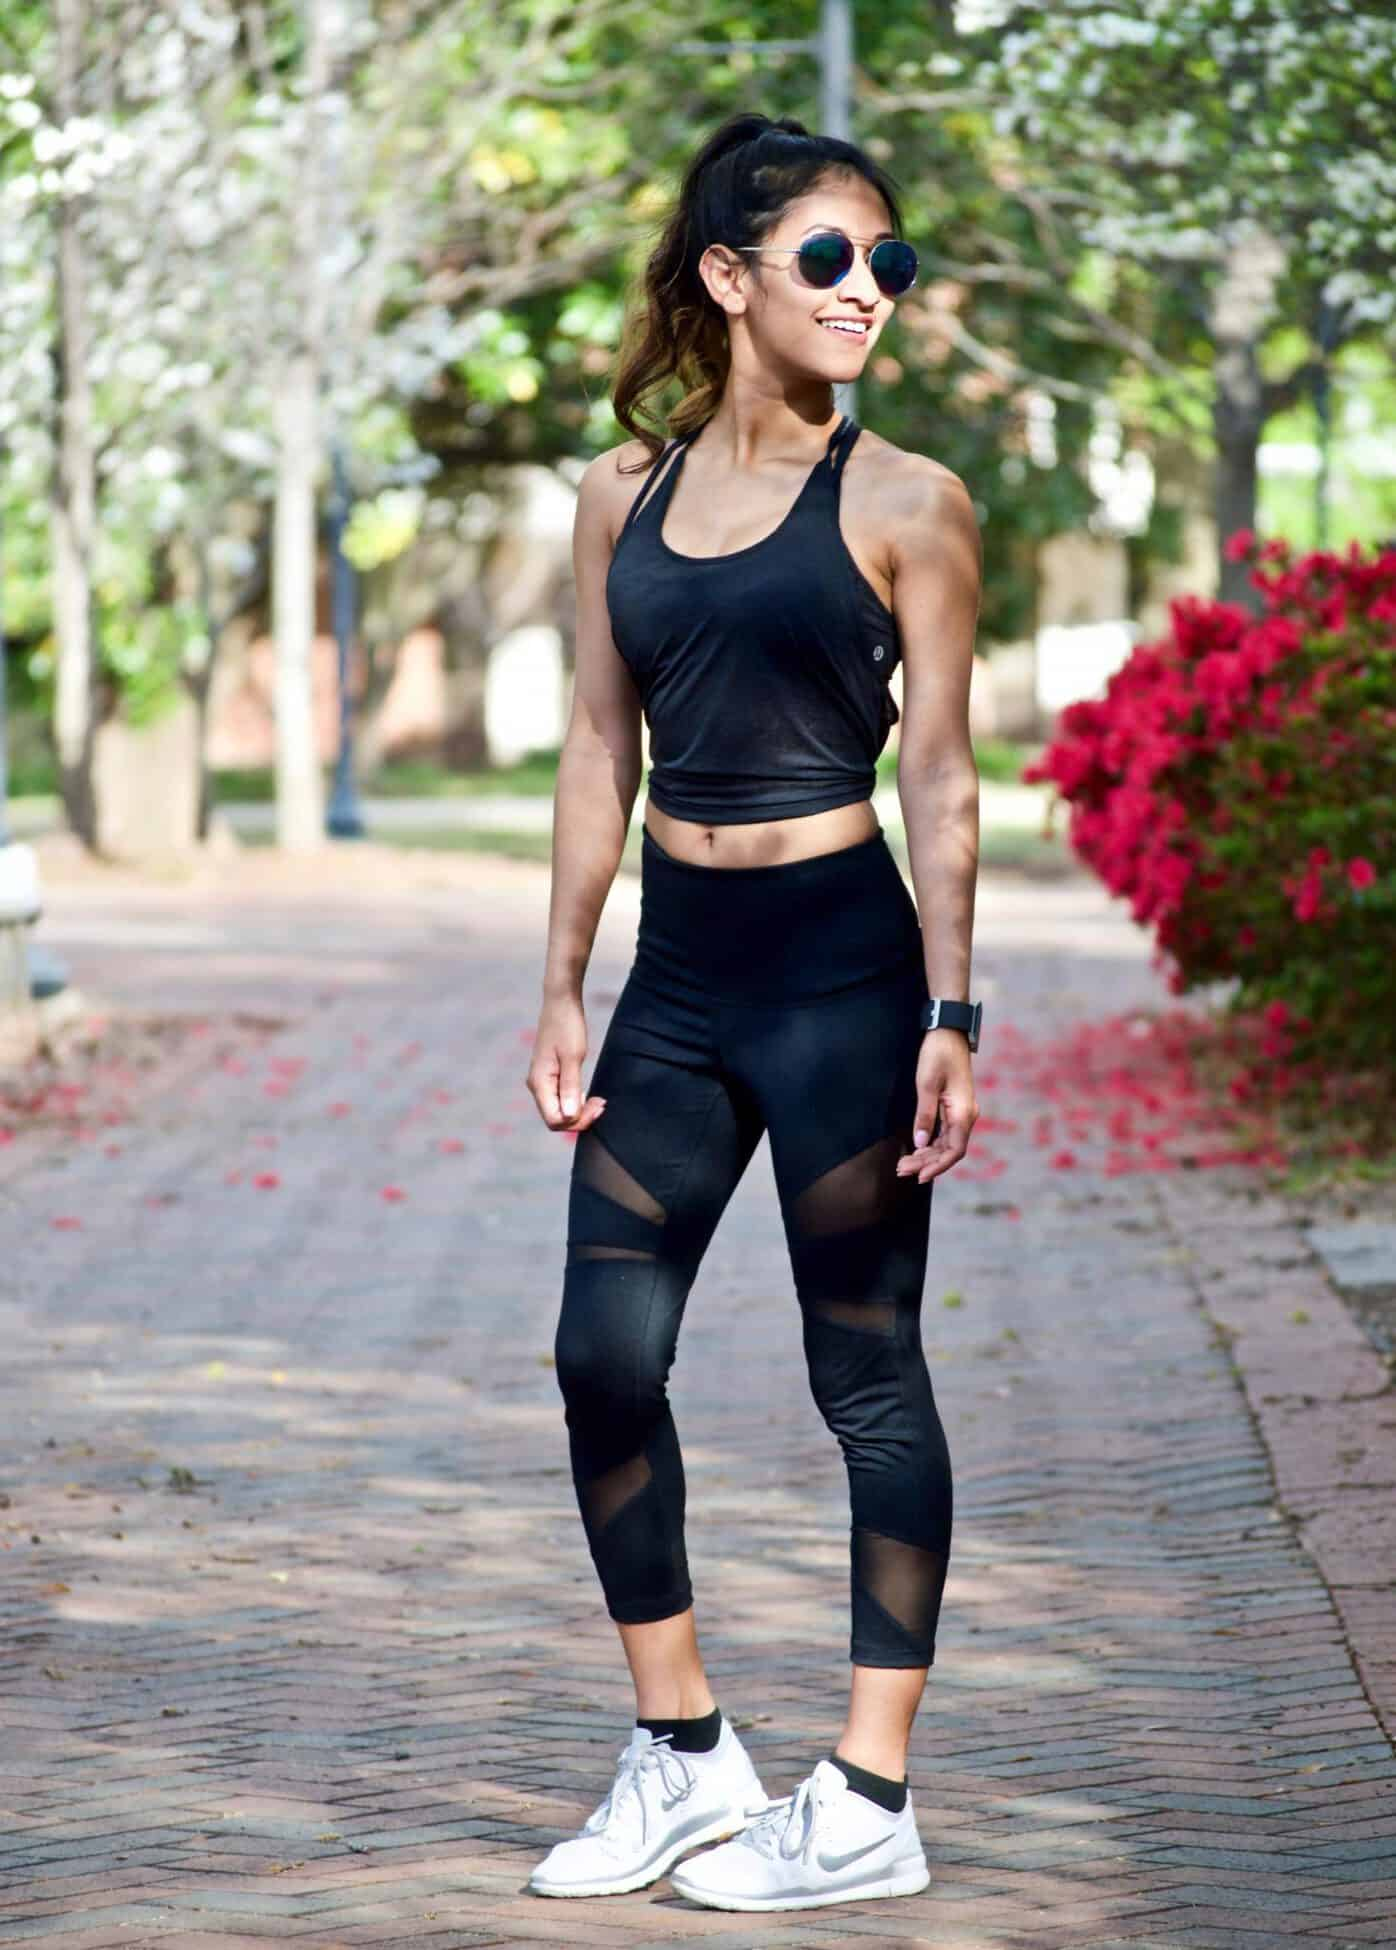 Black Workout Outfit And My Workout Routine